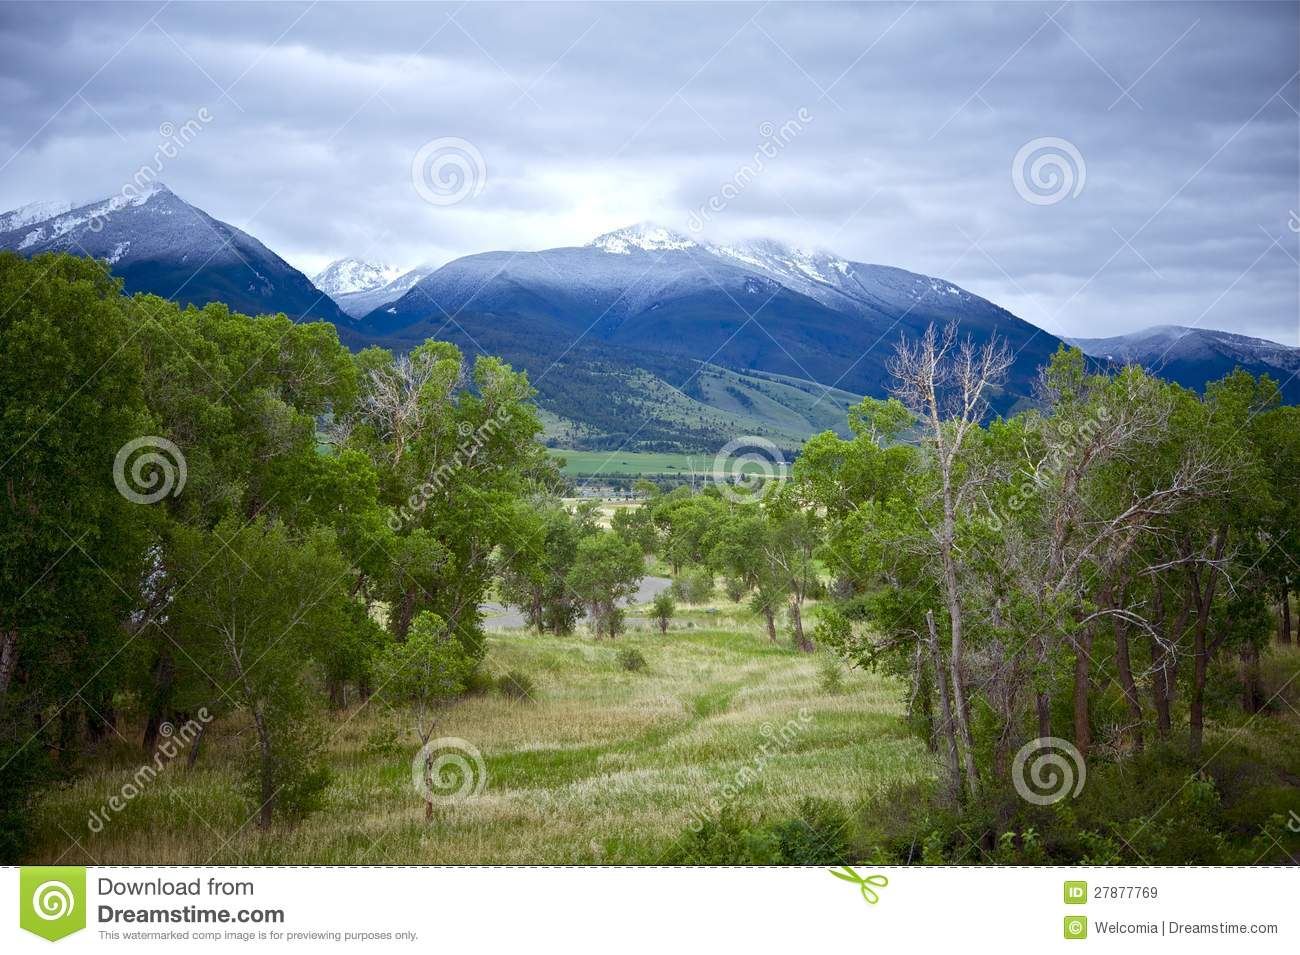 Livingston (MT) United States  city photo : Livingston Montana Landscape. Early Summer Snowy Peaks. Montana ...